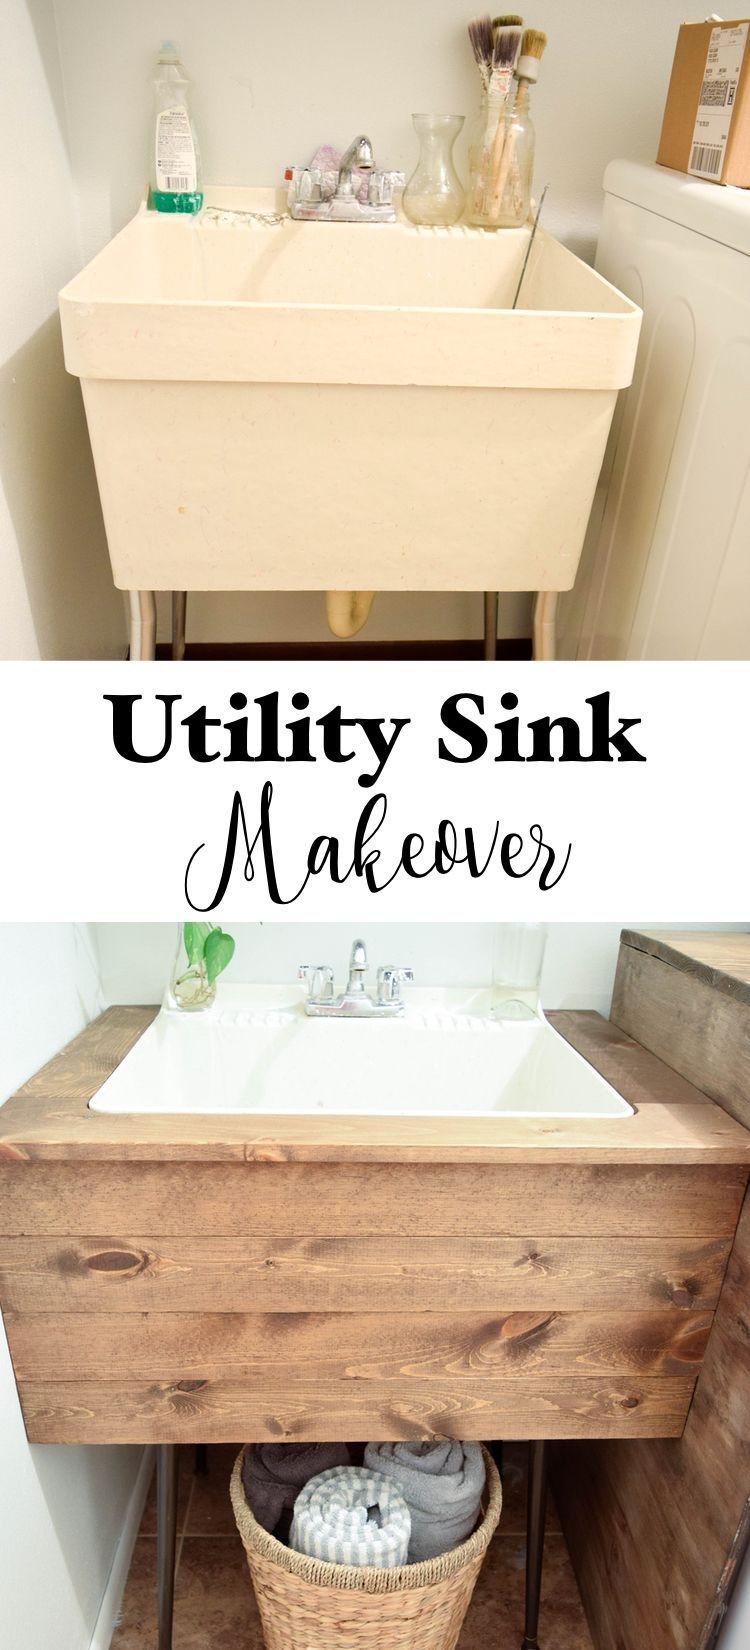 Diy Utility Sink Makeover Timeless Creations Laundry Room Design Laundry Room Makeover Home Remodeling